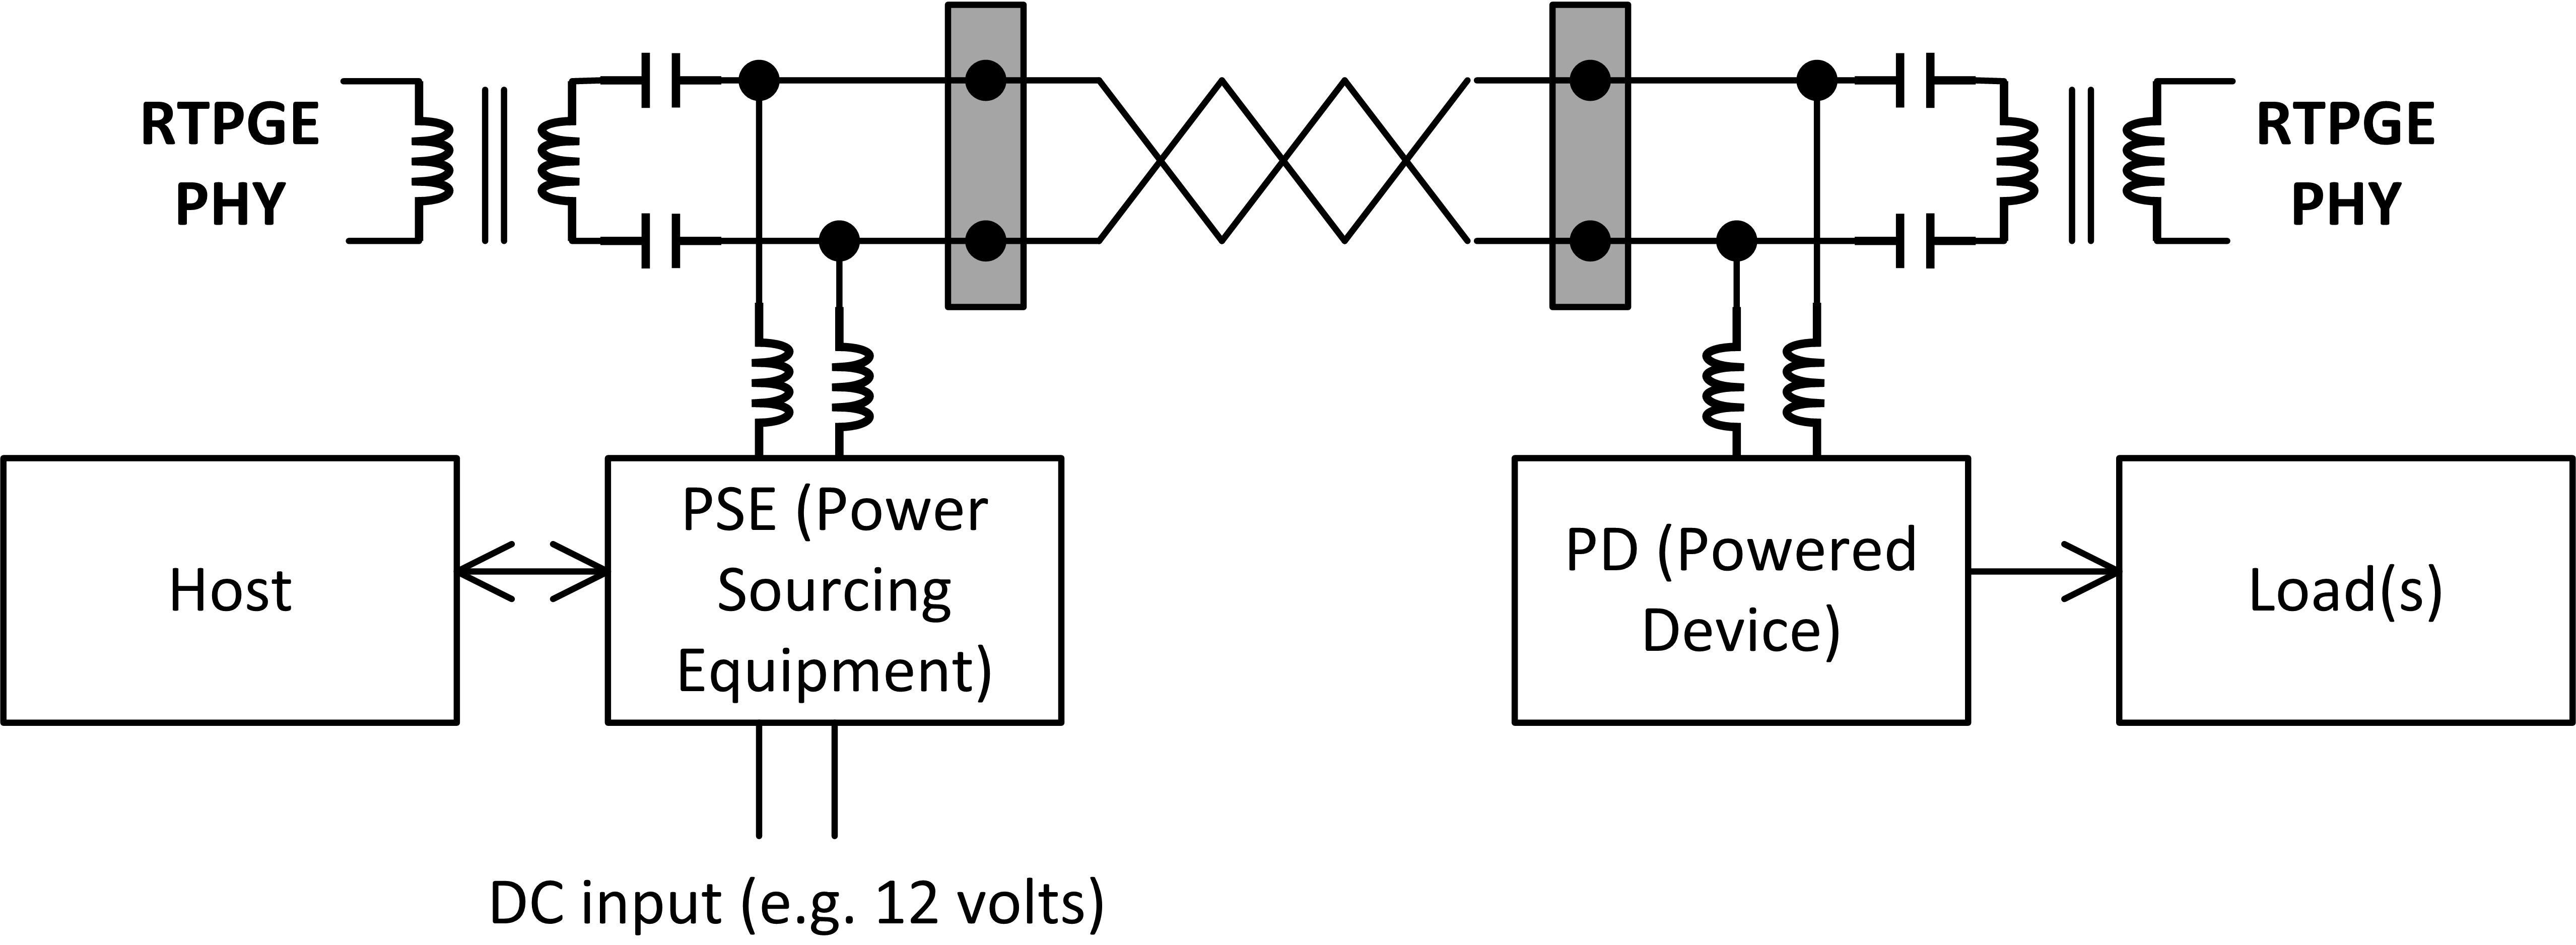 twisted pair wiring diagram 1972 volkswagen beetle electromagnetic interference